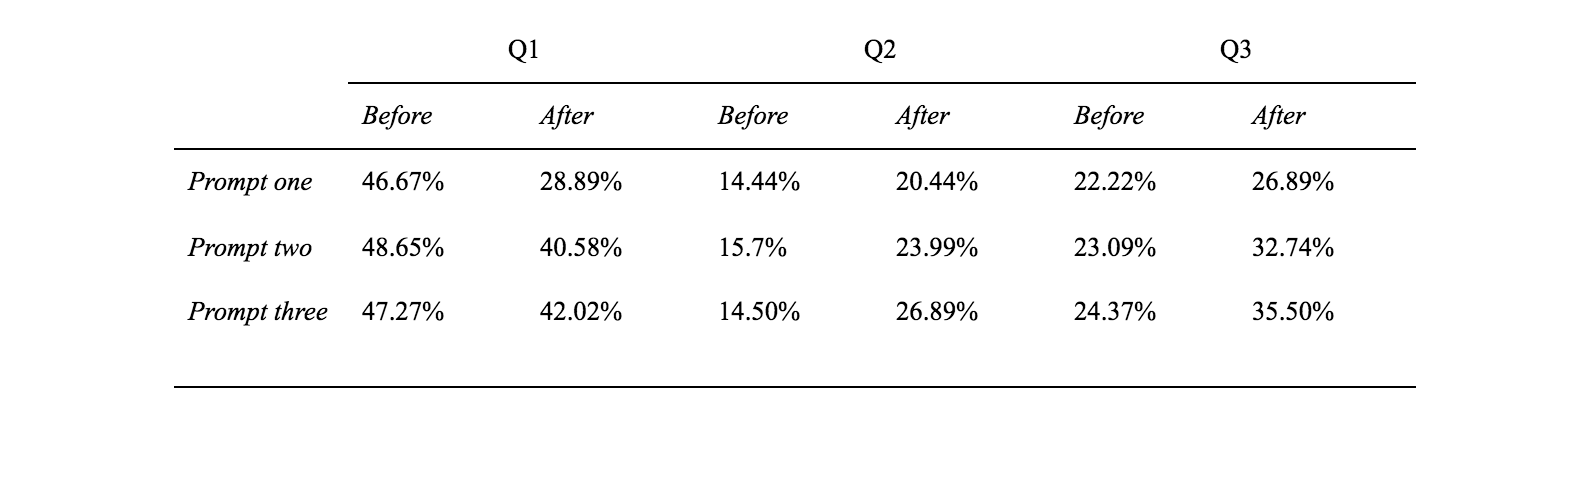 Table 1: Percentage of agreeability on Questions One, Two, and Three on all Prompts before and after the reading.